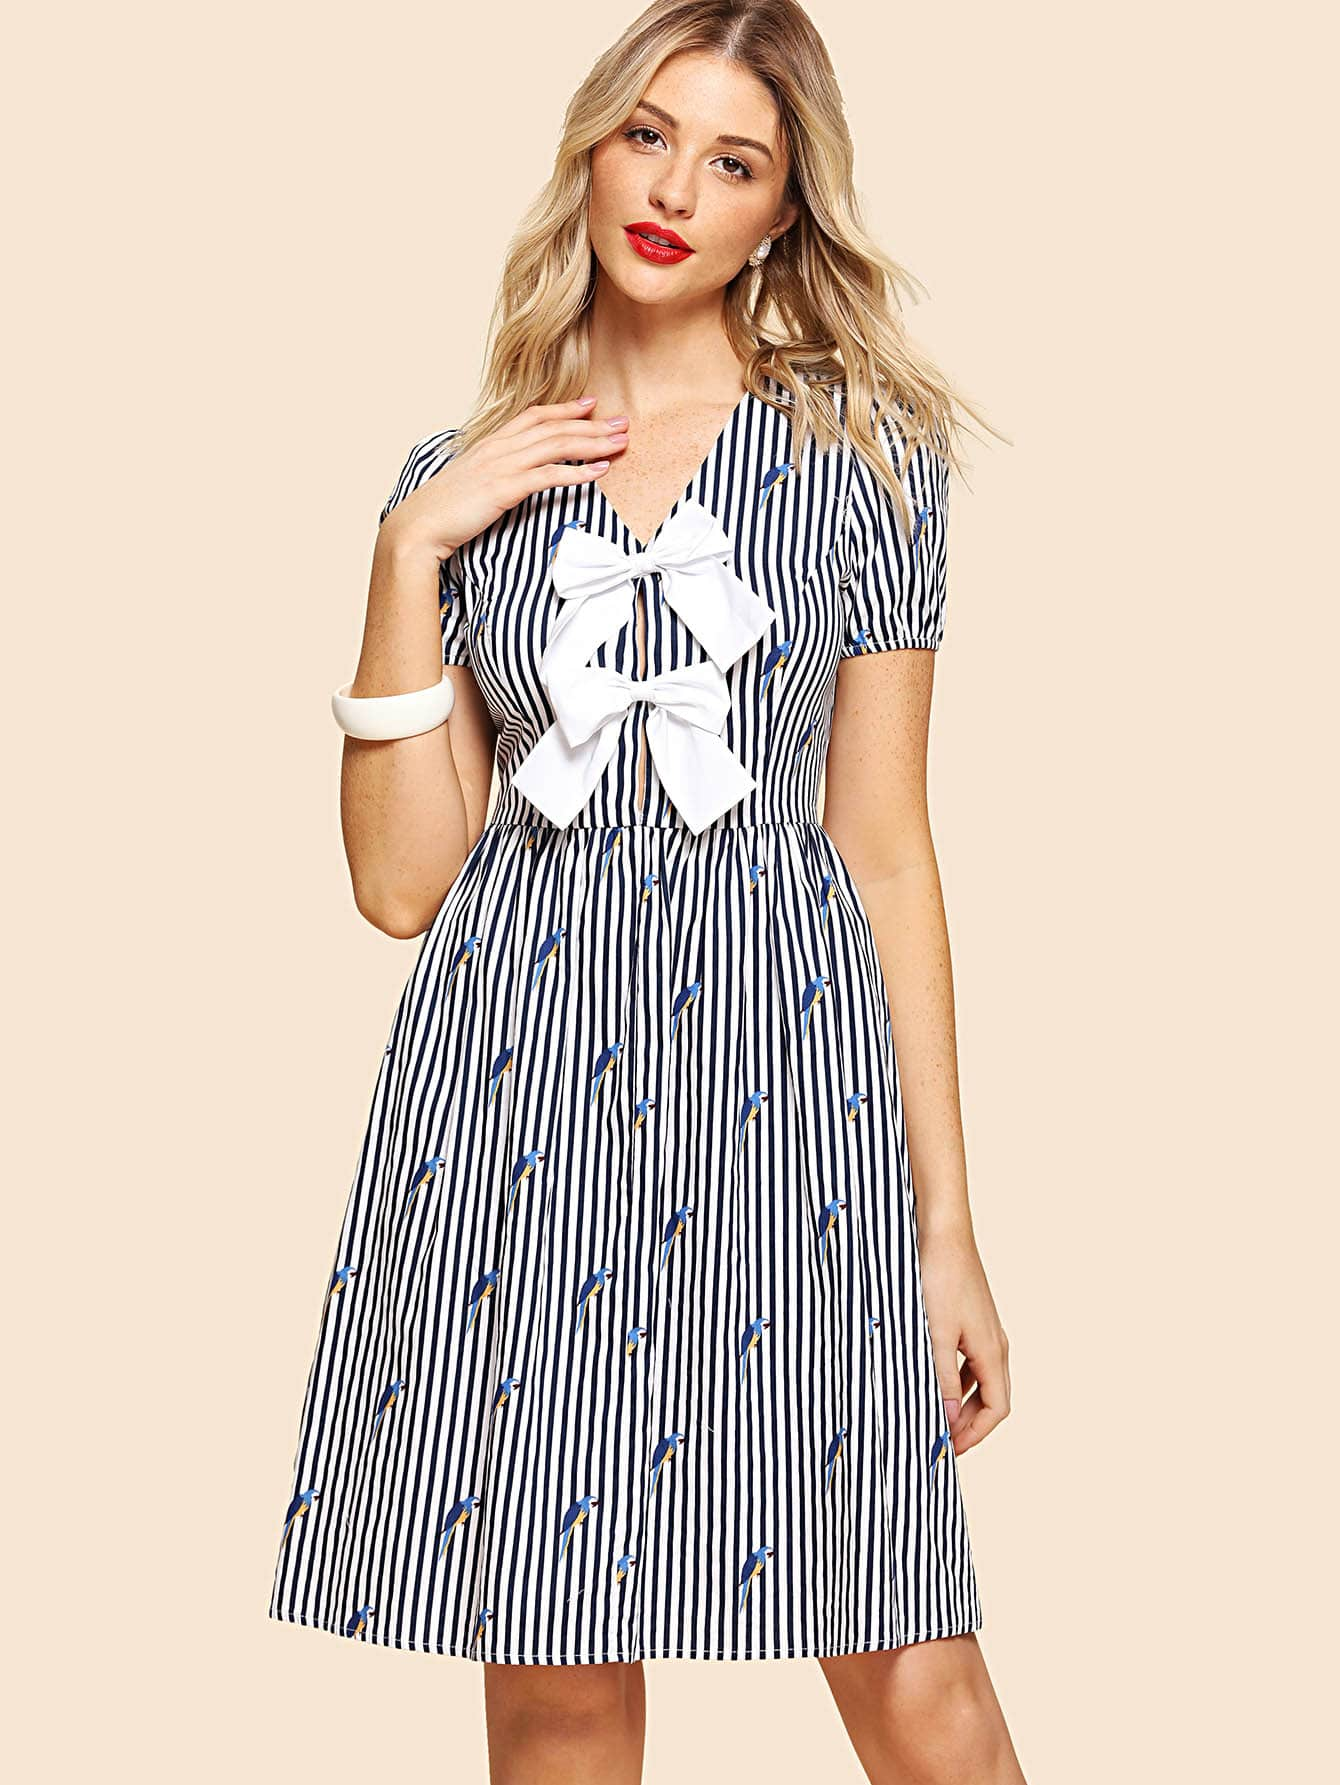 Contrast Bow Front Mixed Print Dress contrast collar foldover front dress